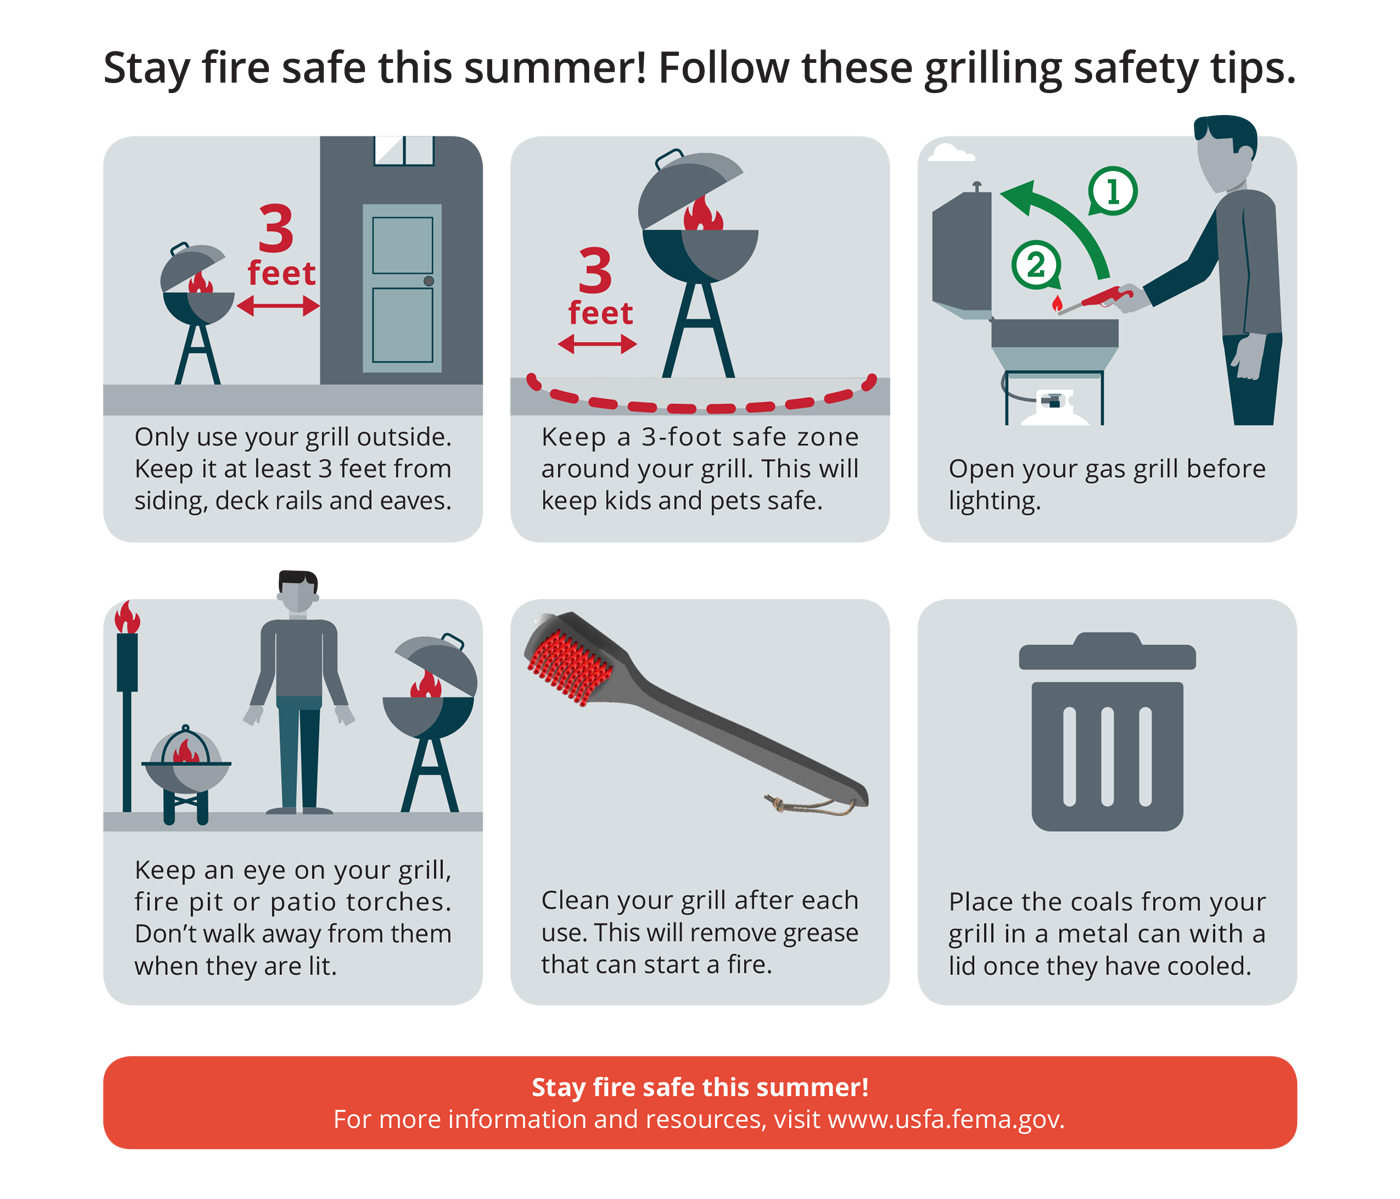 Stay fire safe this summer! Follow these grilling safety tips from the Federal Emergency Management Agency and the U.S. Fire Administration. Only use your grill outside. Keep it at least 3 feet from siding, deck rails, and eaves. Keep a 3-foot safe zone around your grill. This will keep kids and pets safe. Open your gas grill before lighting. Keep an eye on your grill, fire pit, or patio torches. Don't walk away from them when they are lit. Clean your grill after each user. This will remove grease that can start a fire. Place the coals from your grill in a metal can with a lid once they have cooled.